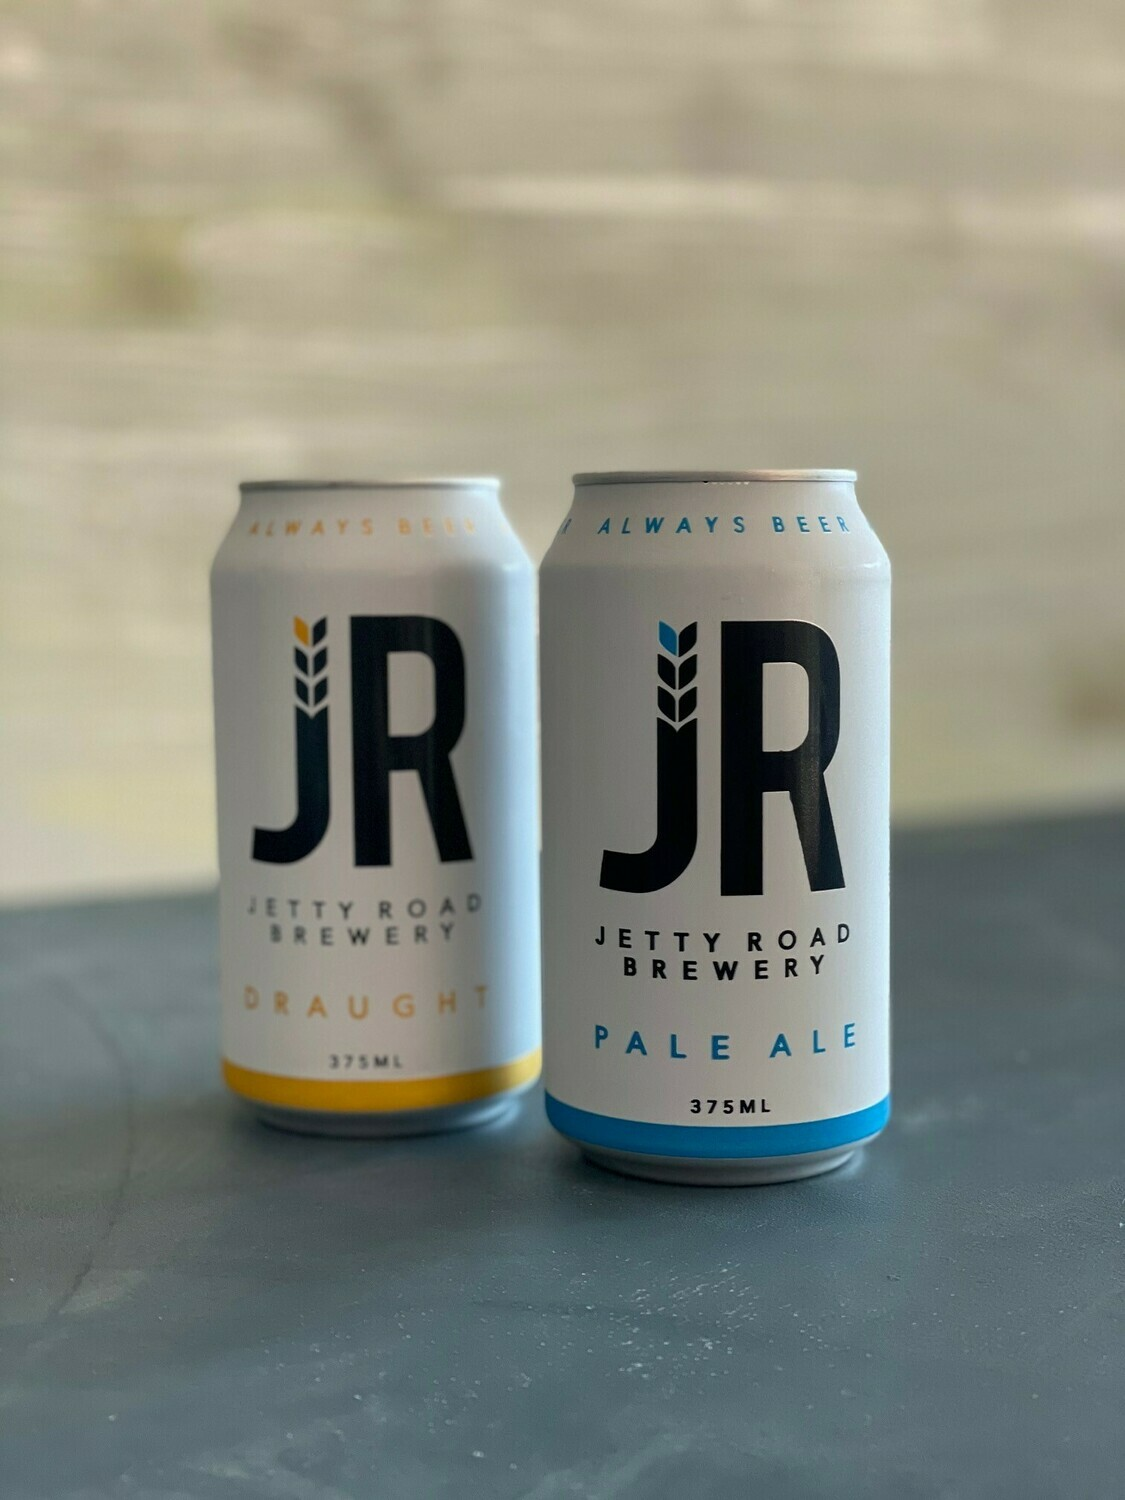 Draft - Jetty Road Brewery (375ml)